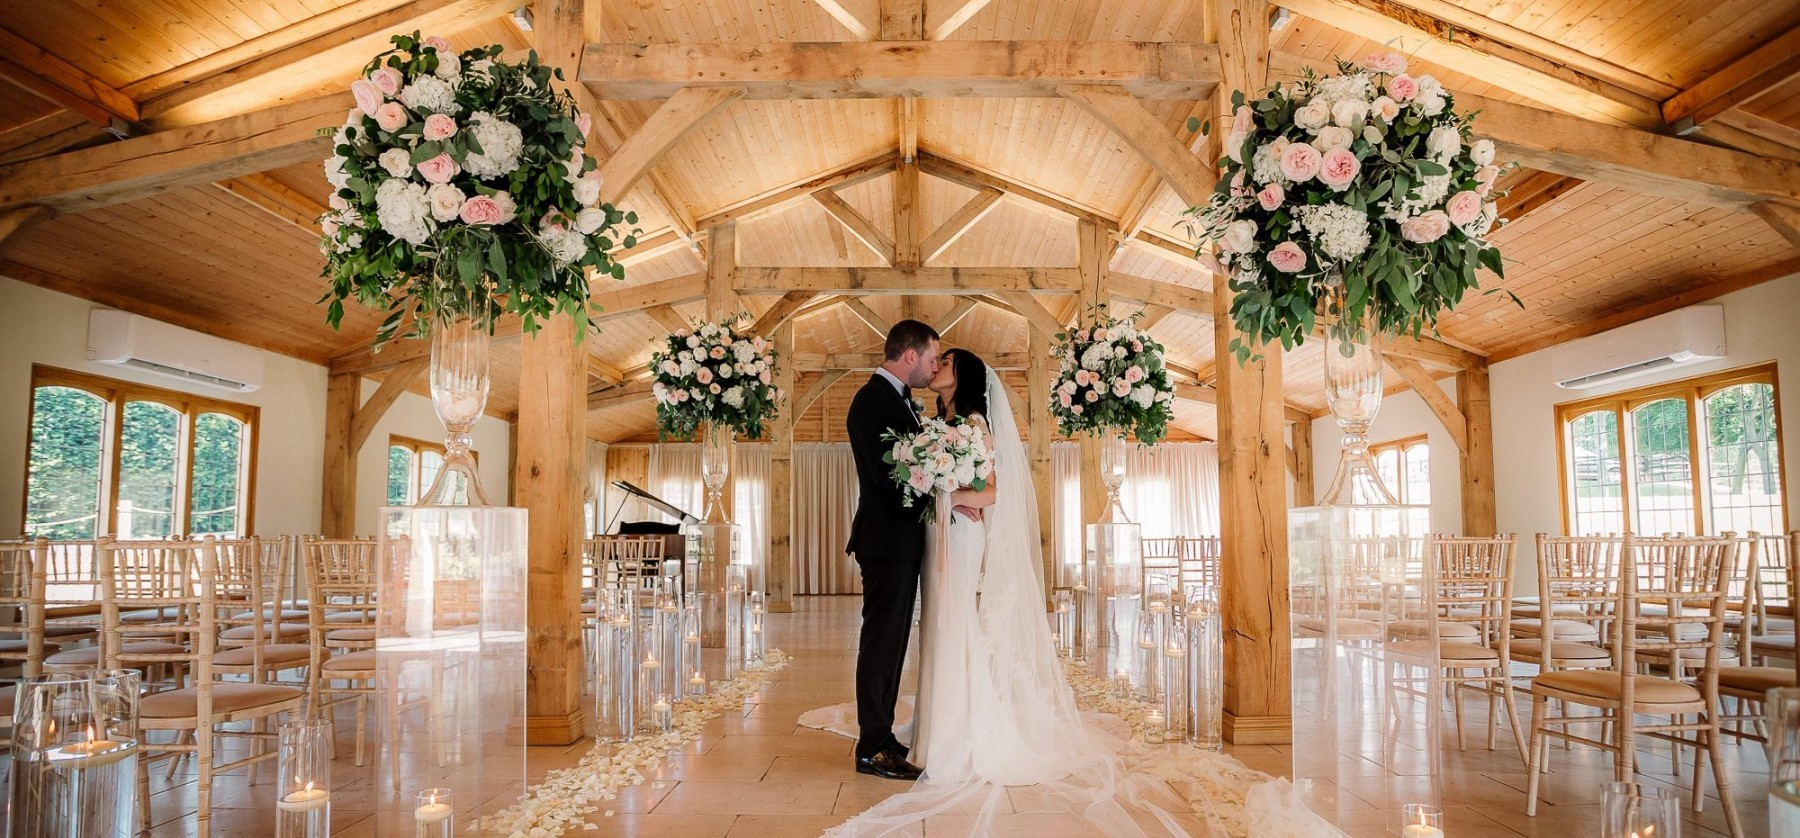 The Ceremony In The Stables Wedding Venue Cheshire Colshaw Hall